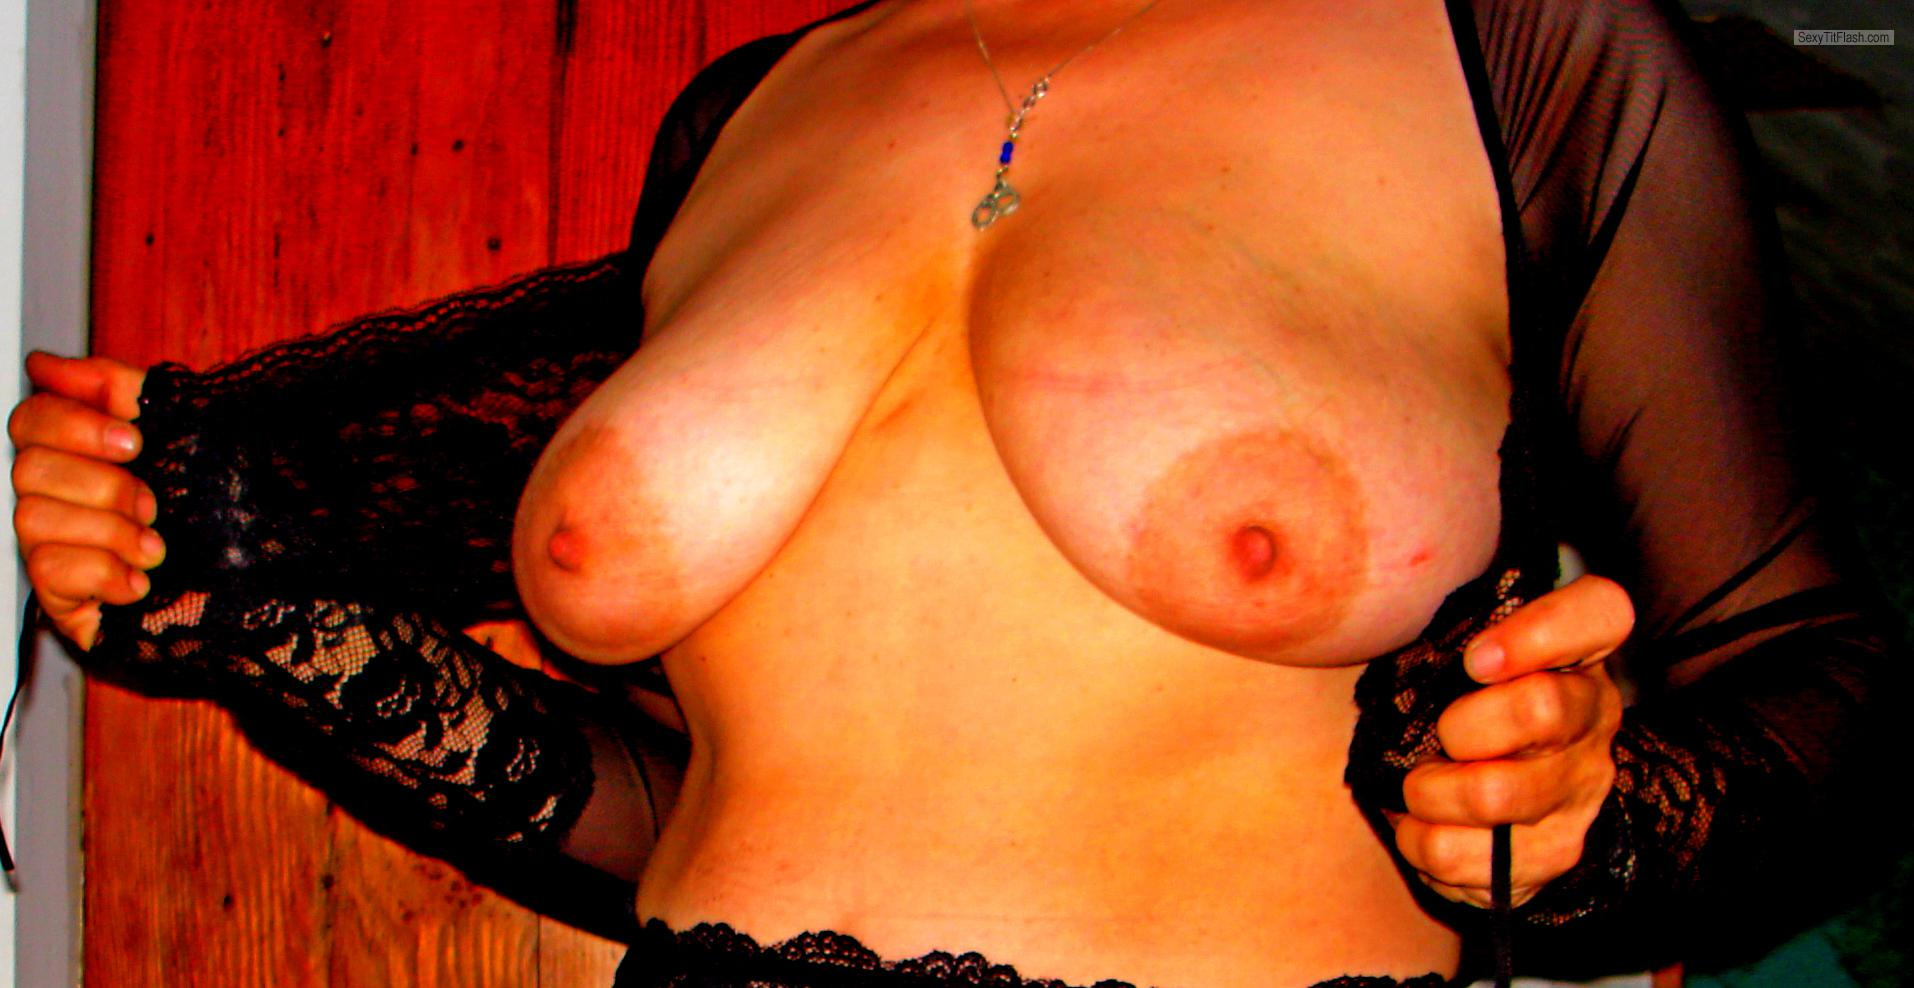 Tit Flash: My Very Big Tits - Lori from United States